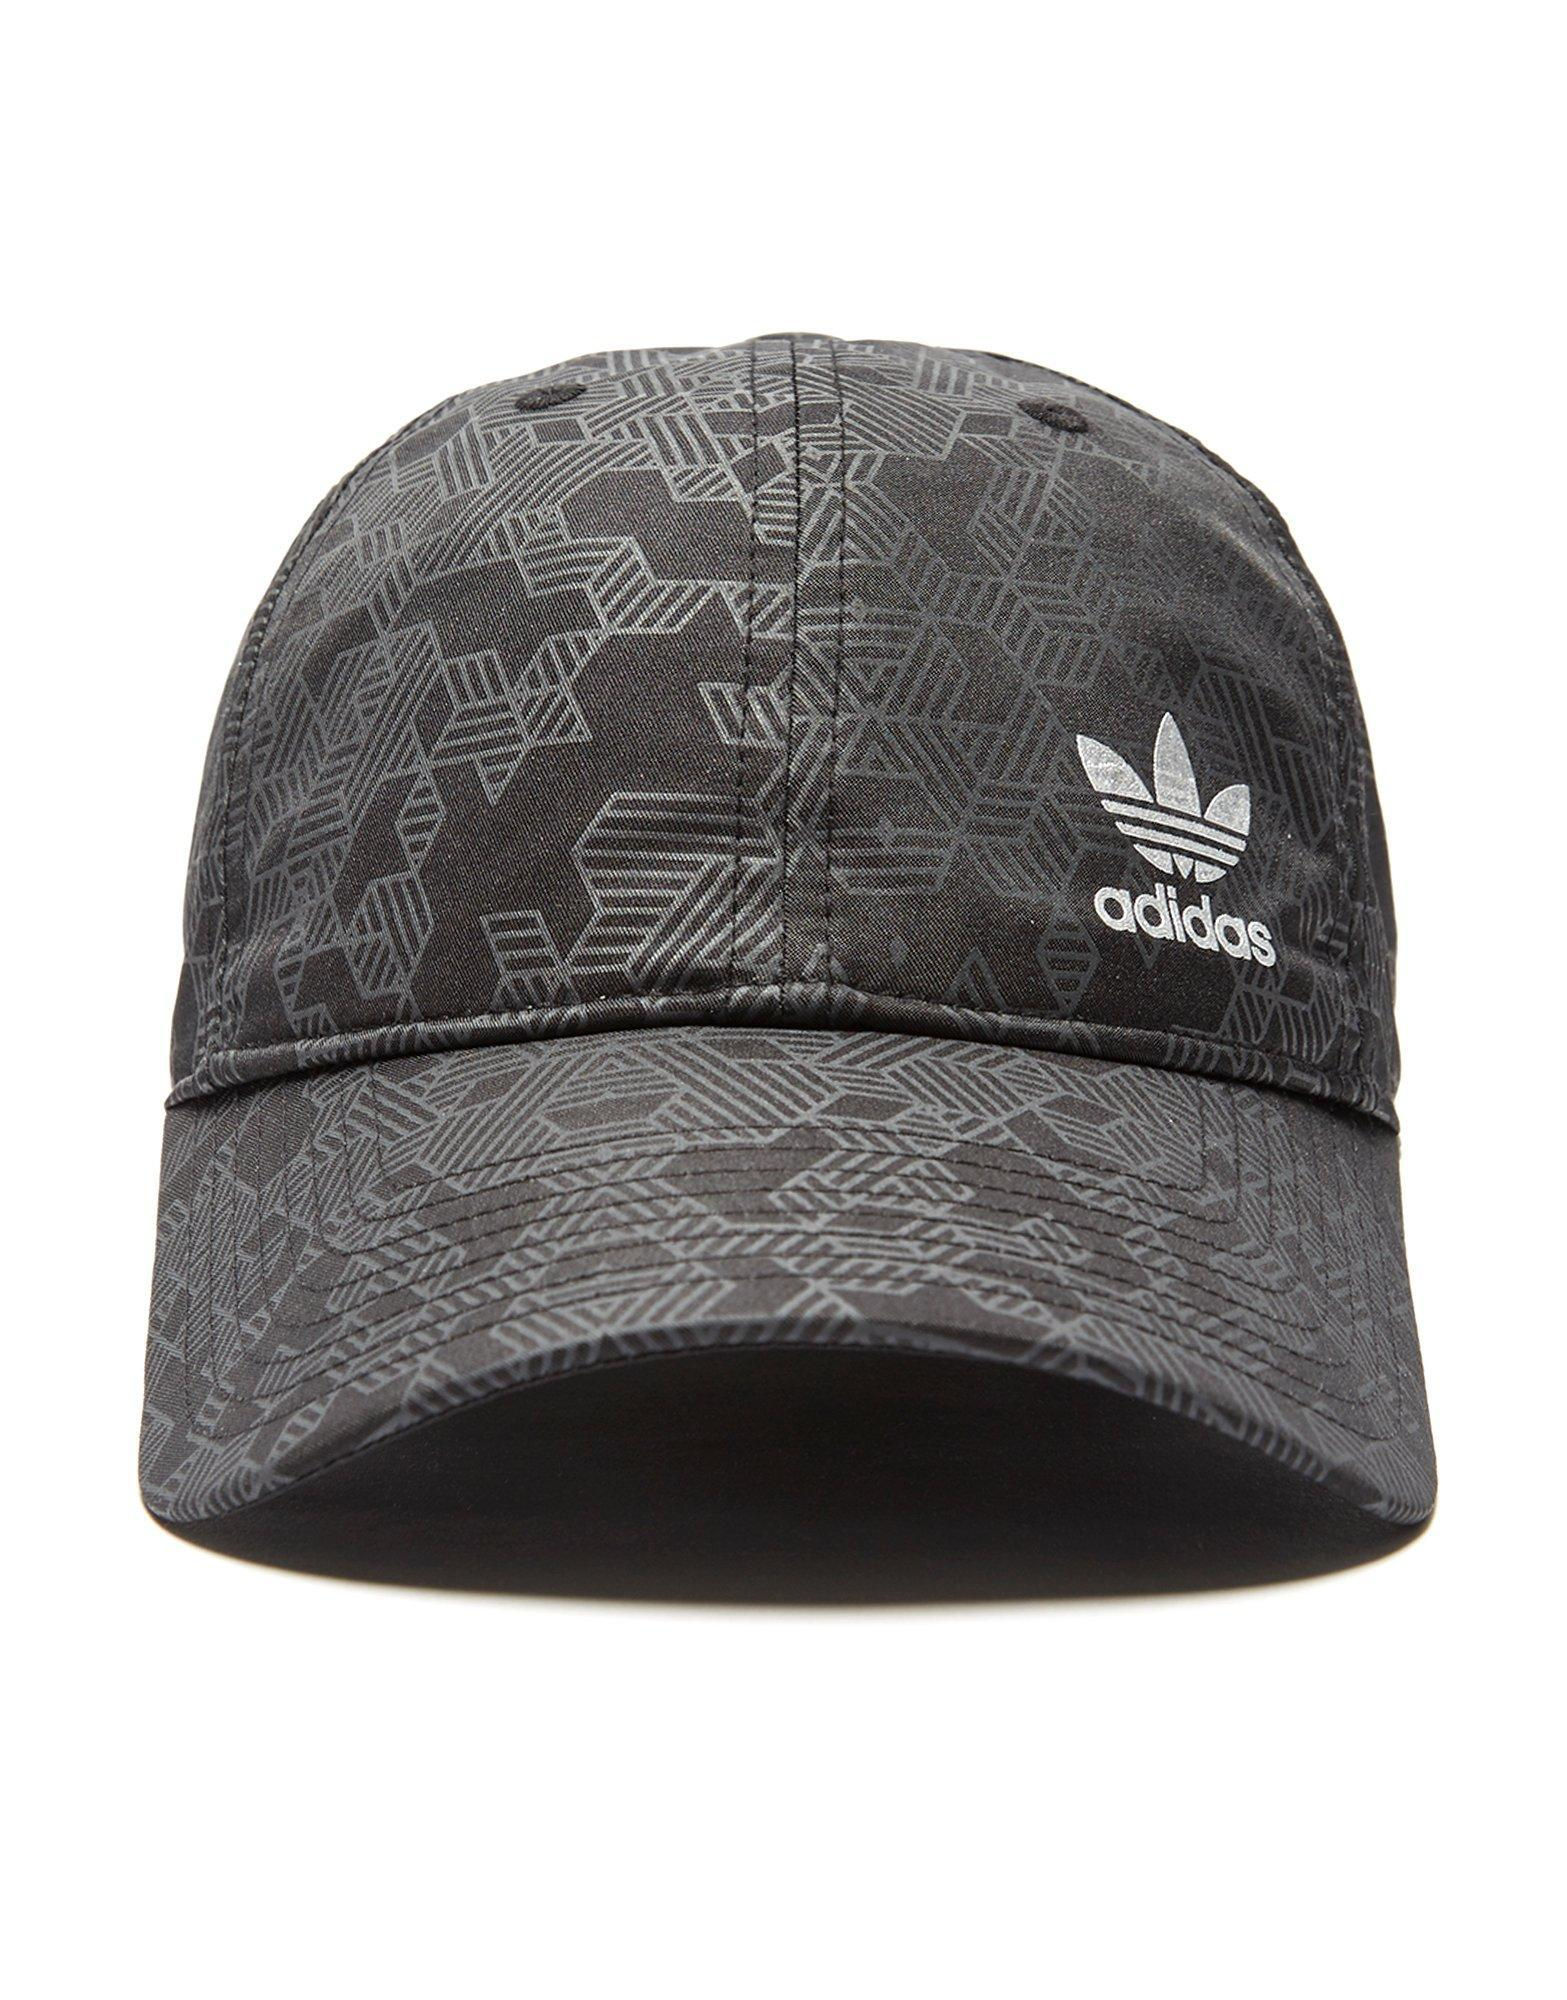 abe830a0667c0 ... netherlands lyst adidas originals street run cap in black for men 614a0  ee1f9